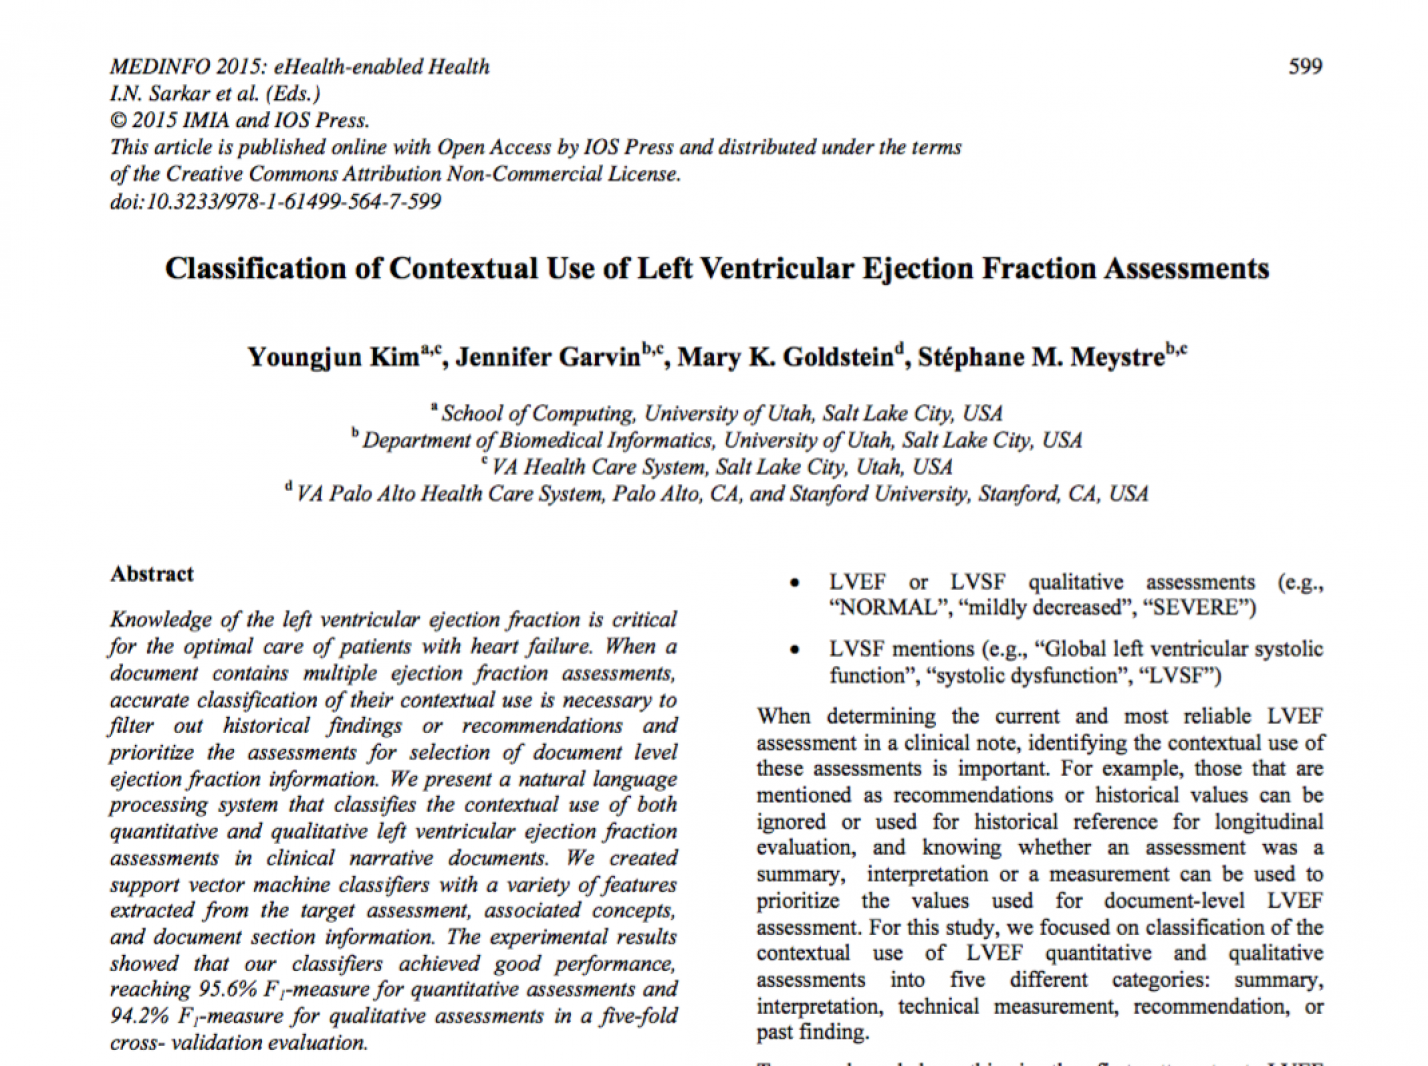 Classification of Contextual Use of Left Ventricular Ejection Fraction Assessments